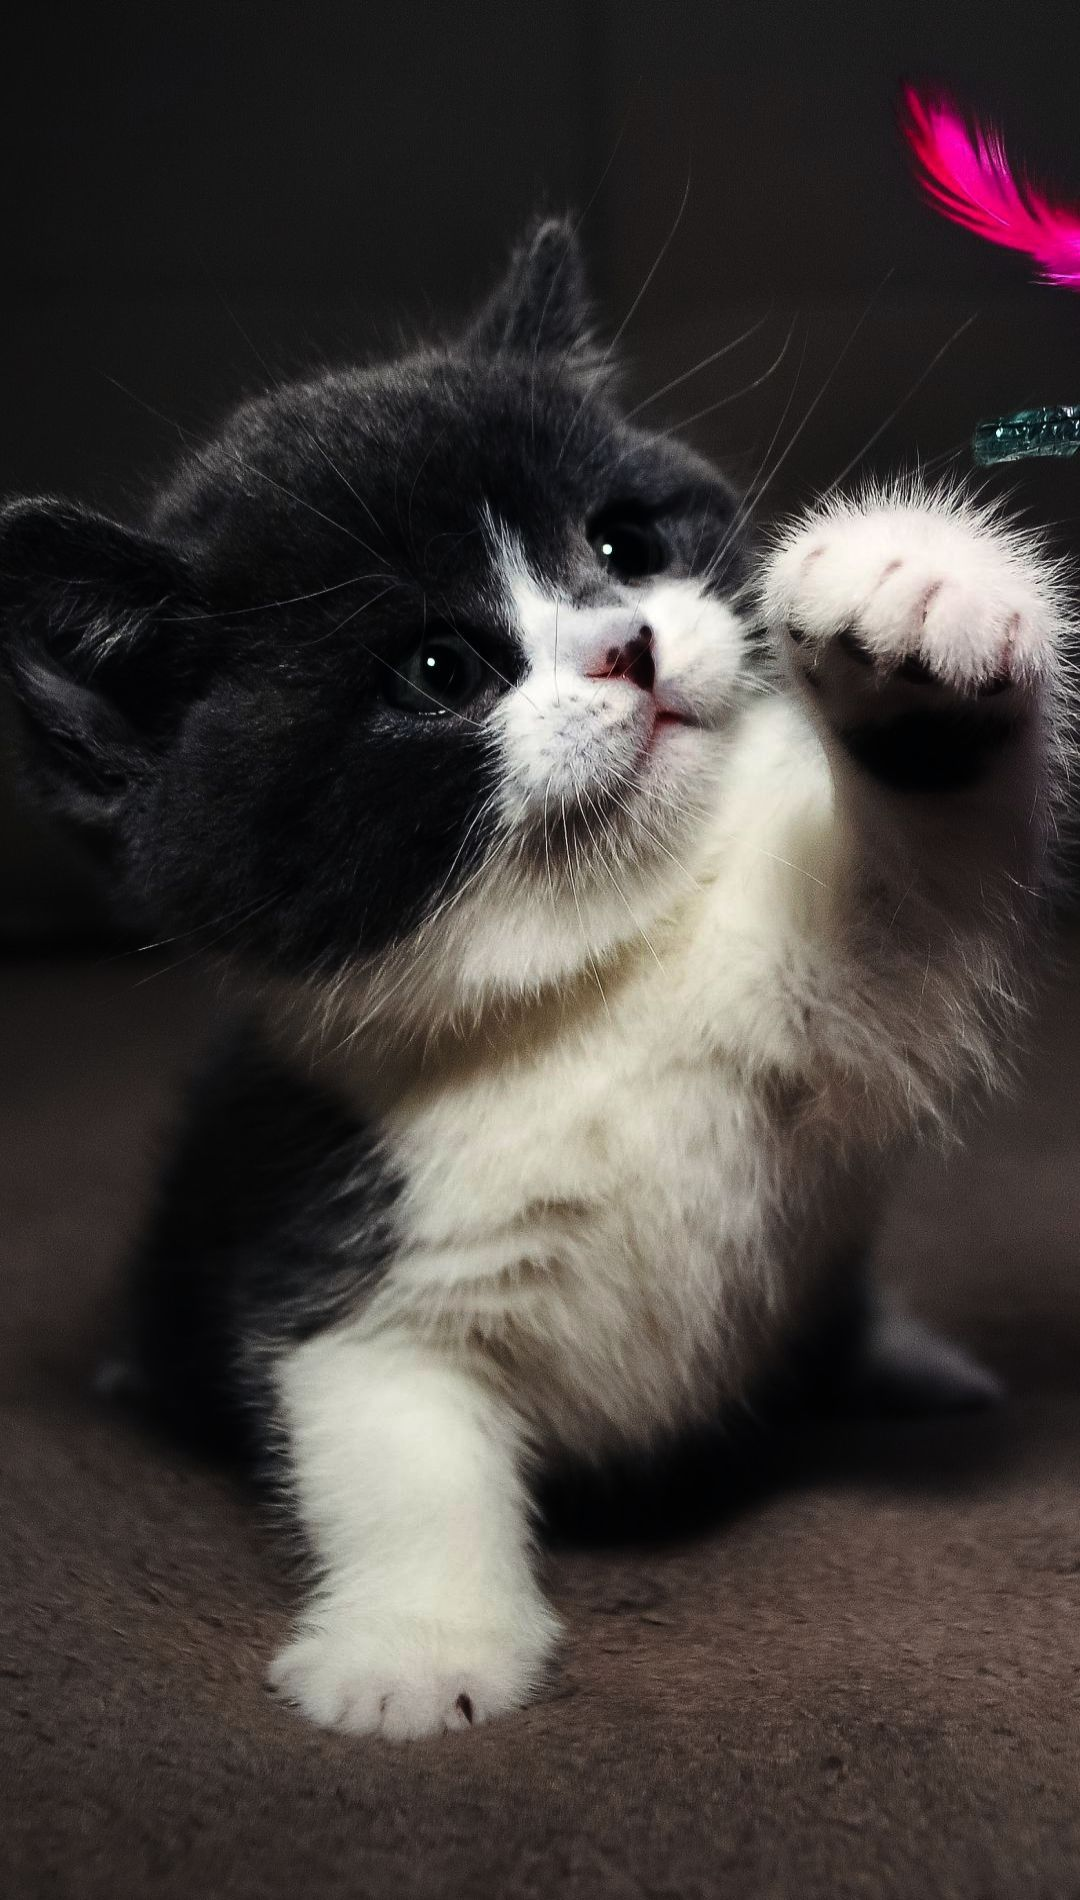 Cute Cats Names Male Cute Kittens And Puppies Pictures Kittens Cutest Cute Cats And Kittens Cute Animals